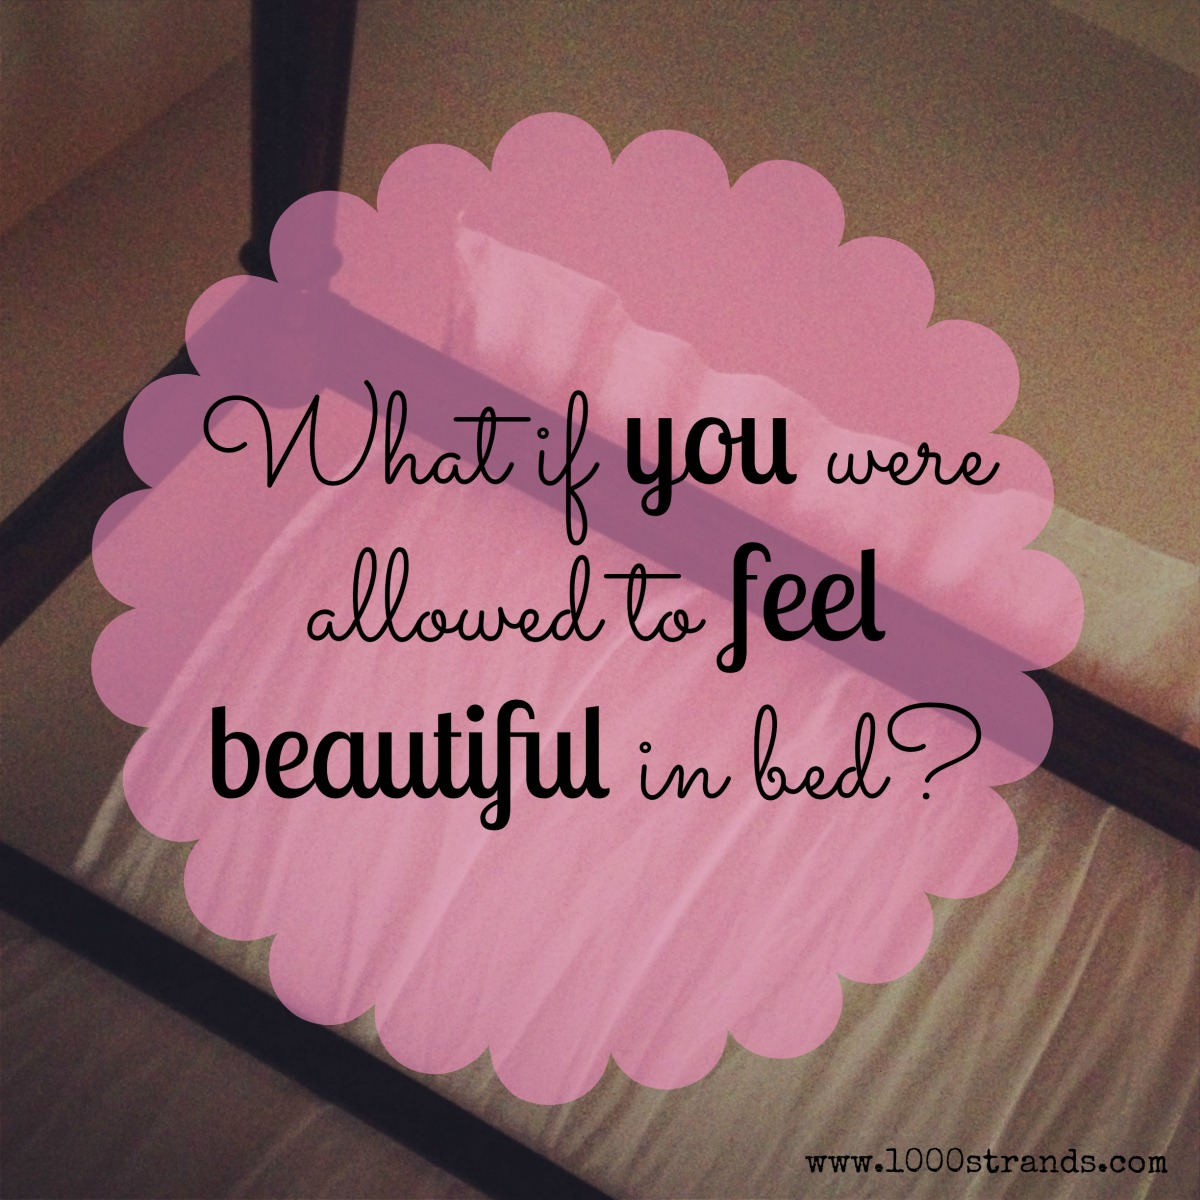 Beautiful in Bed Question